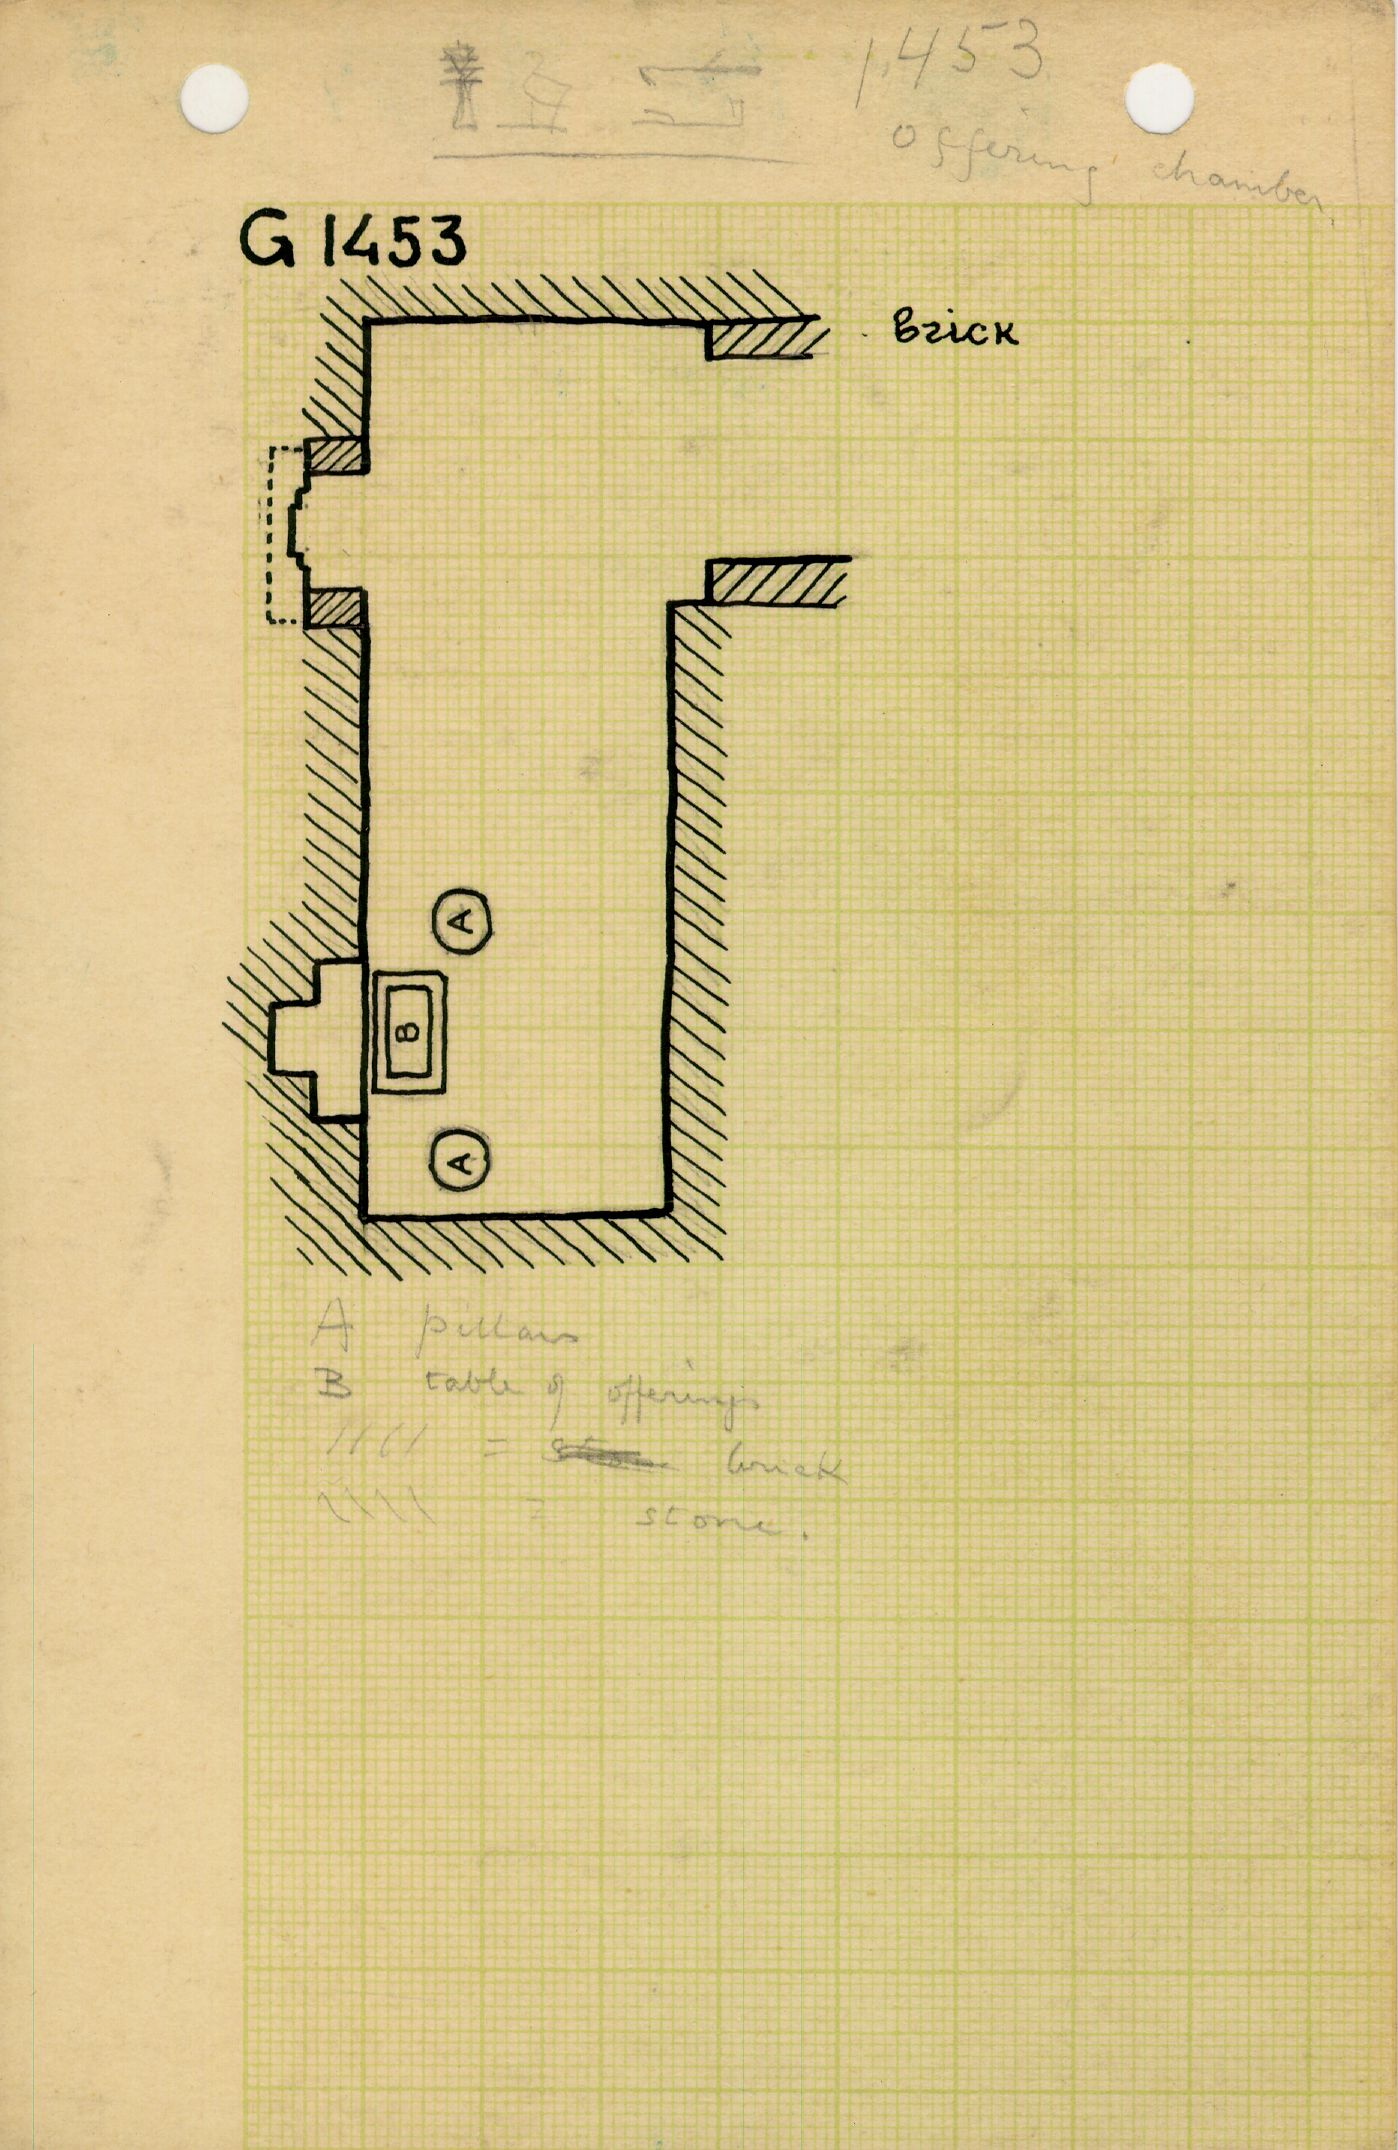 Maps and plans: G 1452+1453: G 1453, Plan of chapel